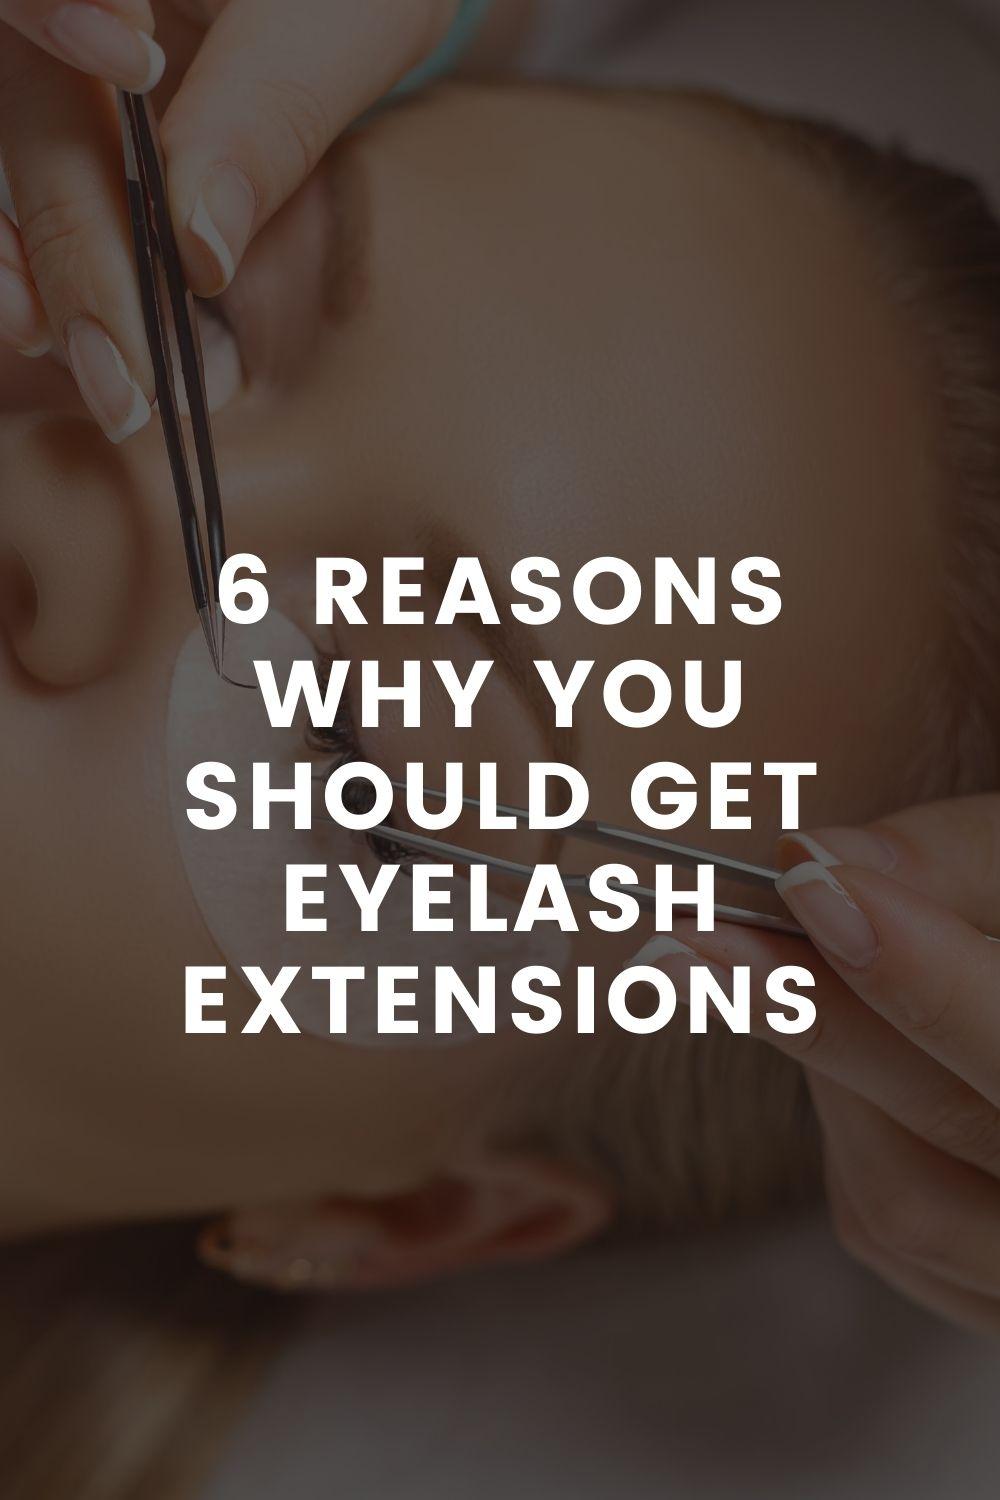 6 Reasons Why You Should Get Eyelash Extensions